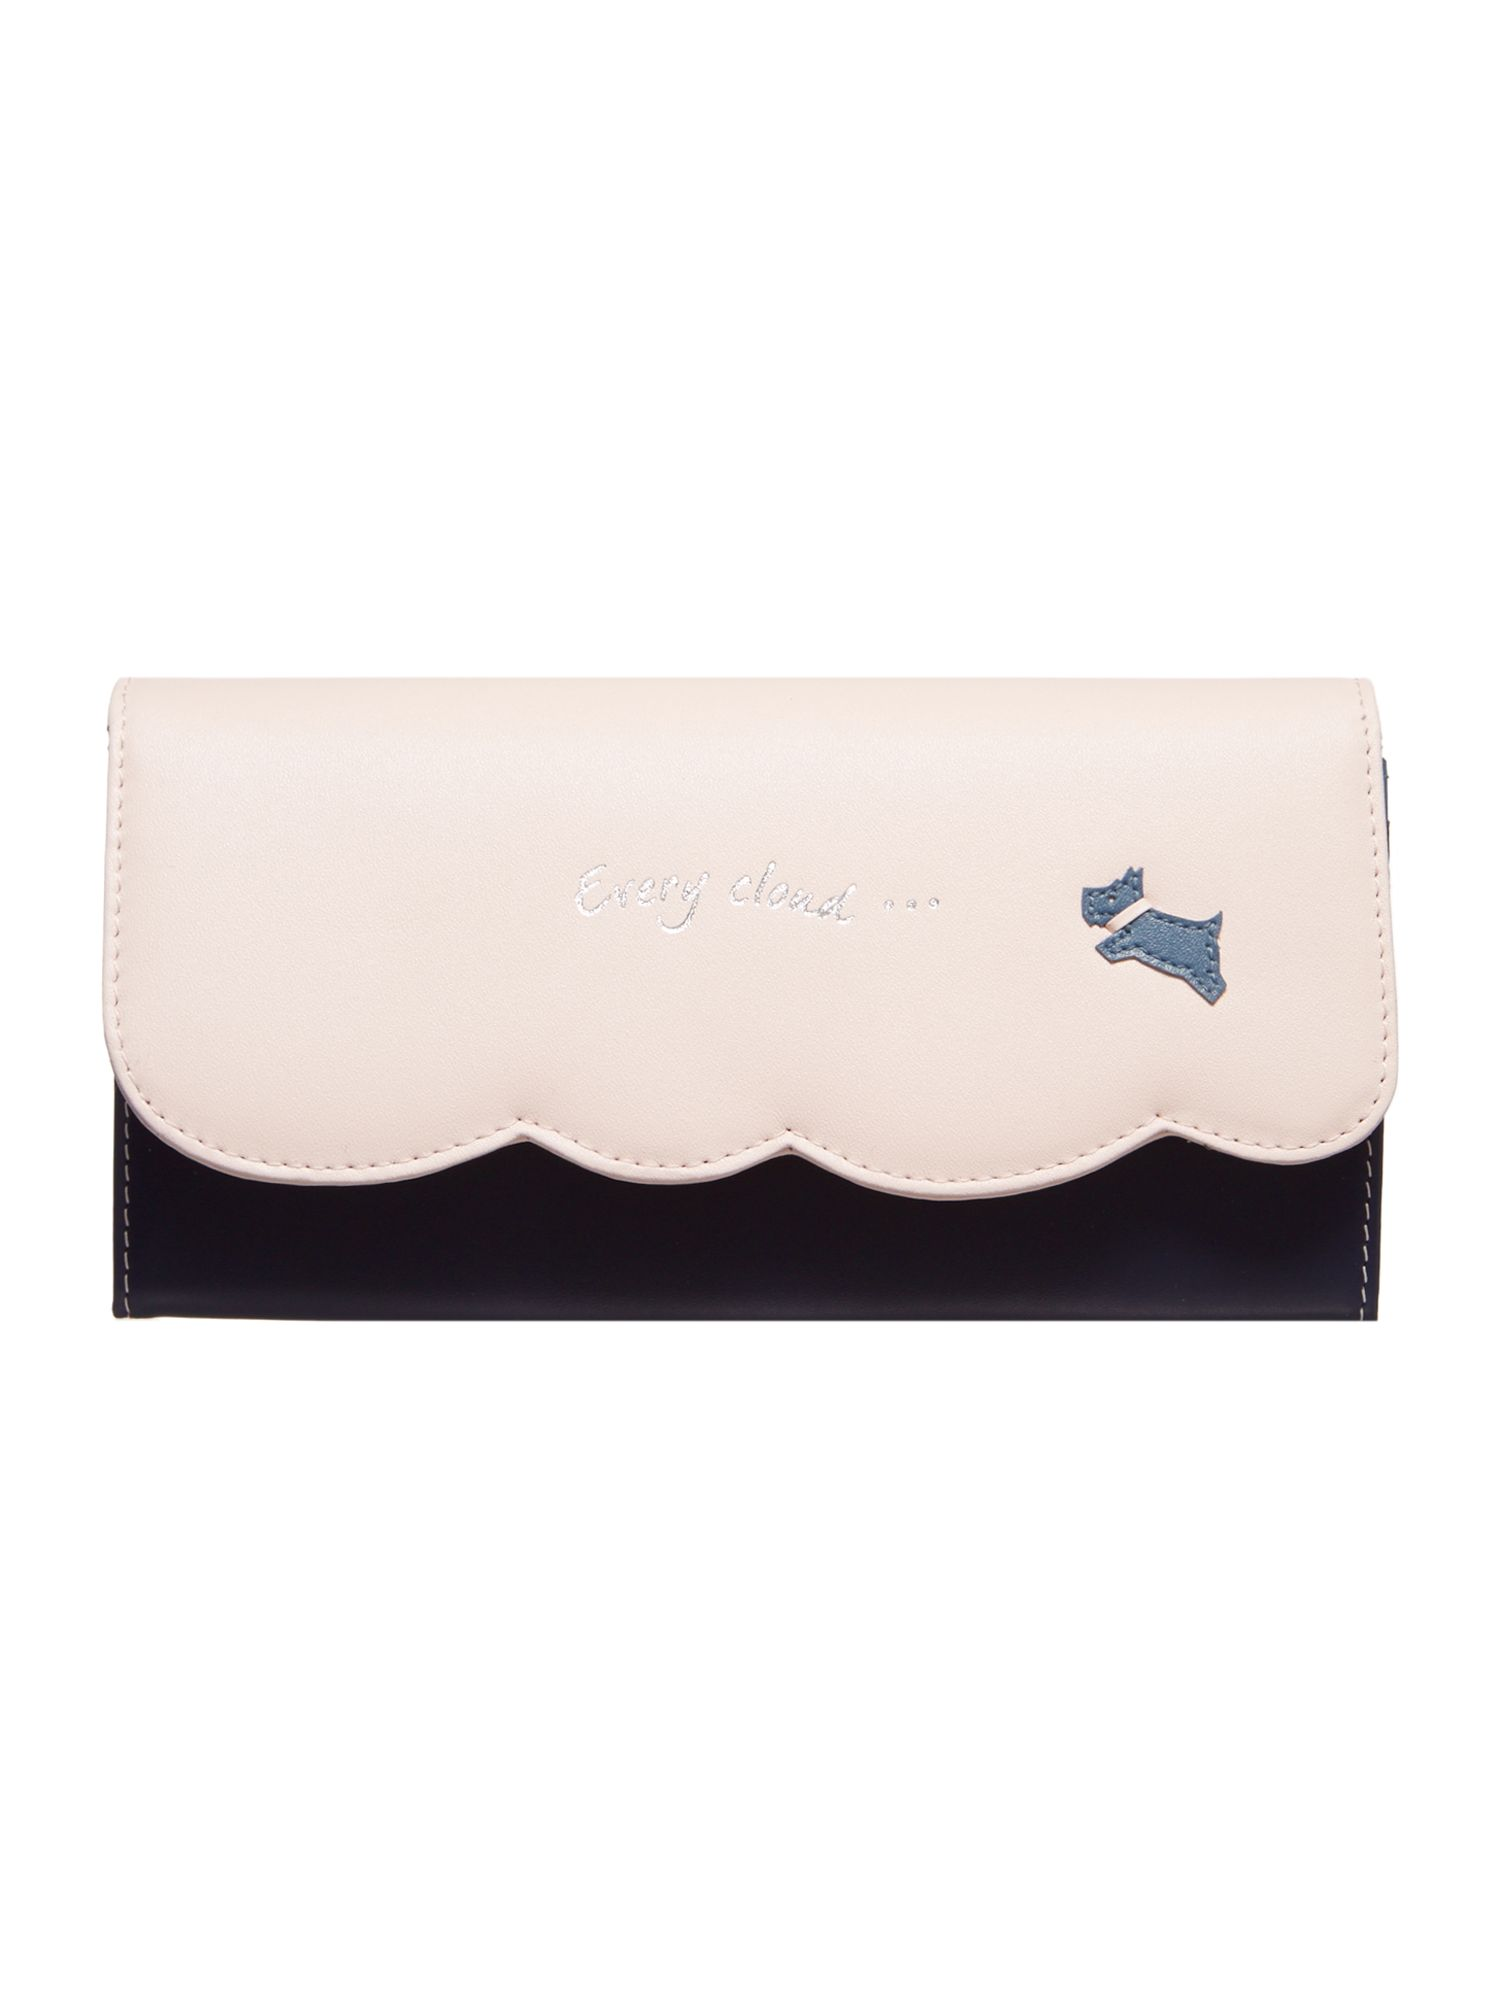 Radley Every cloud large slim flapover matinee purse Navy